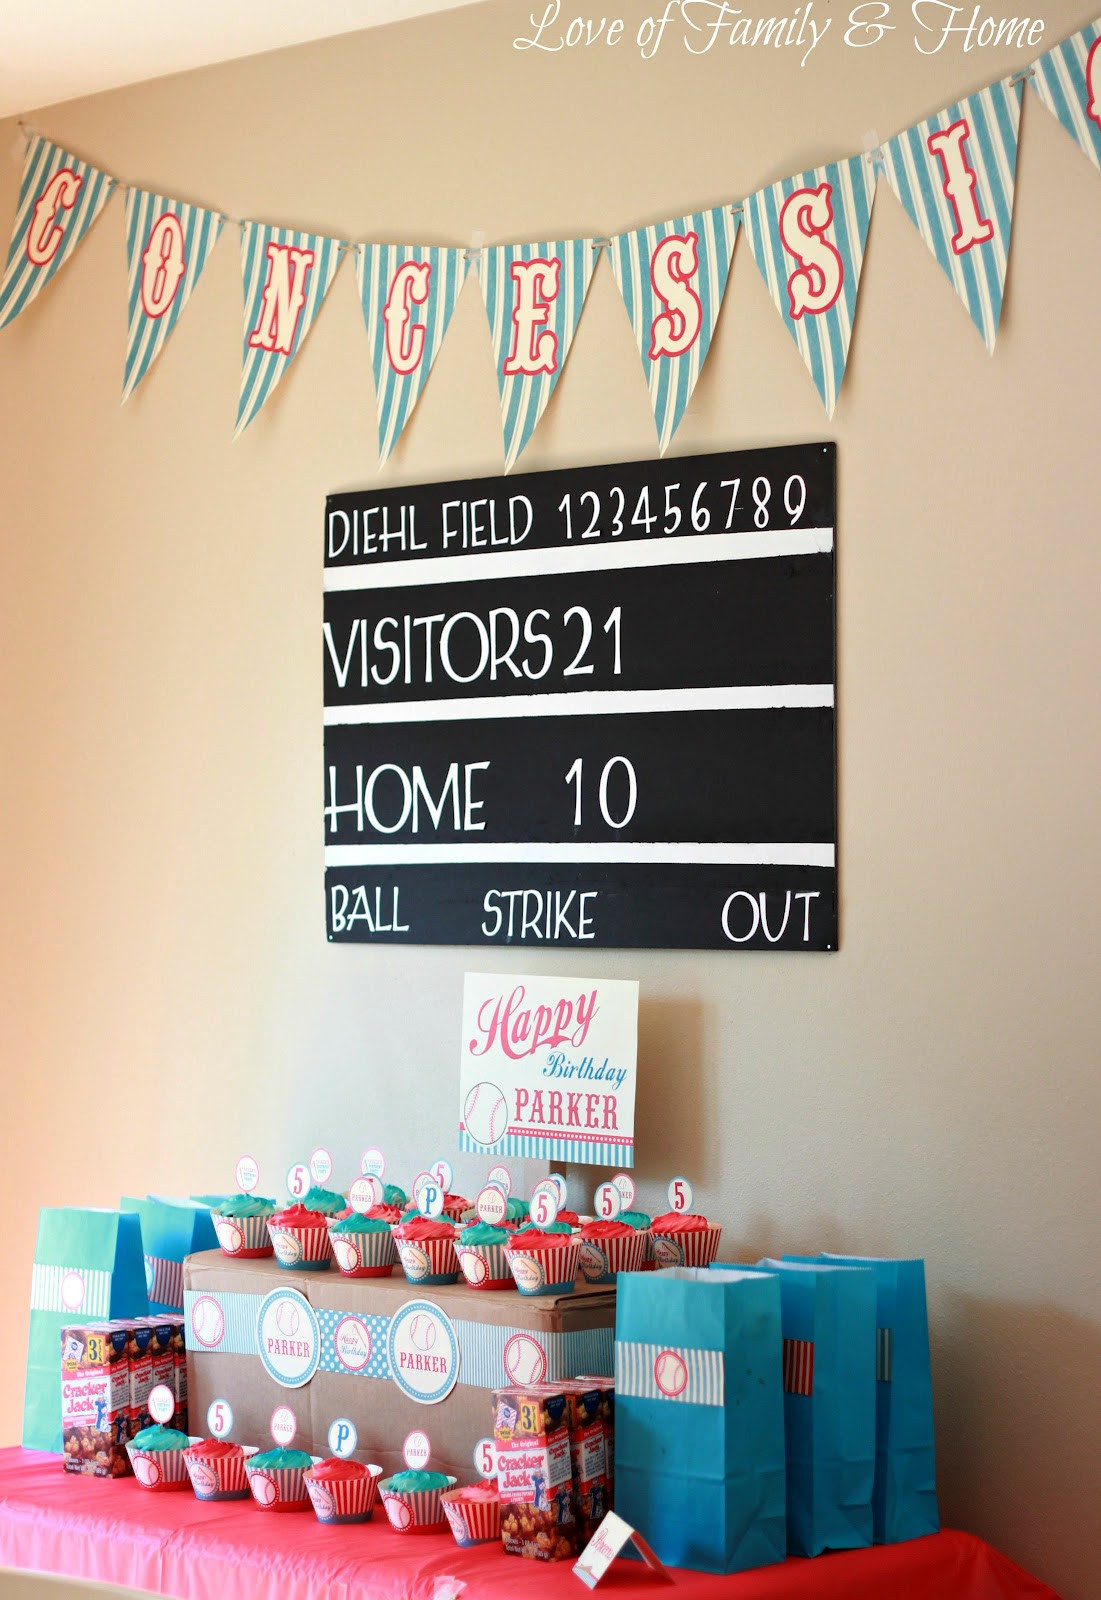 Best ideas about Baseball Themed Birthday Party . Save or Pin DIY Baseball Themed Birthday Party Love of Family & Home Now.